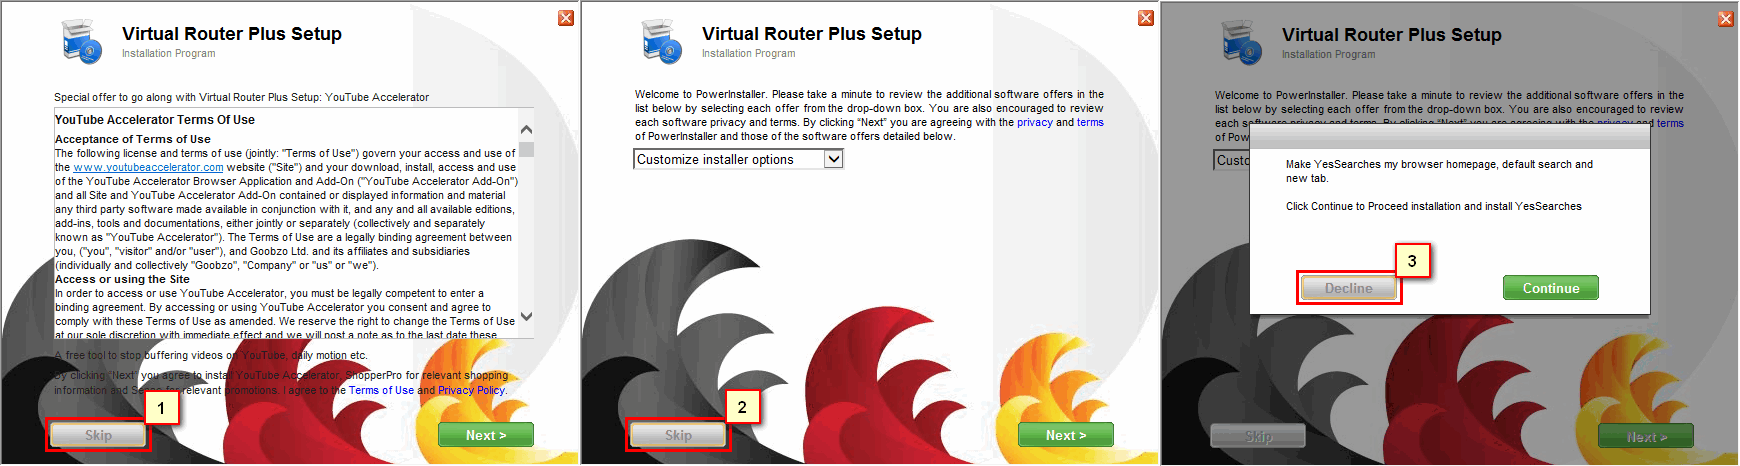 Установка Virtual Router Plus